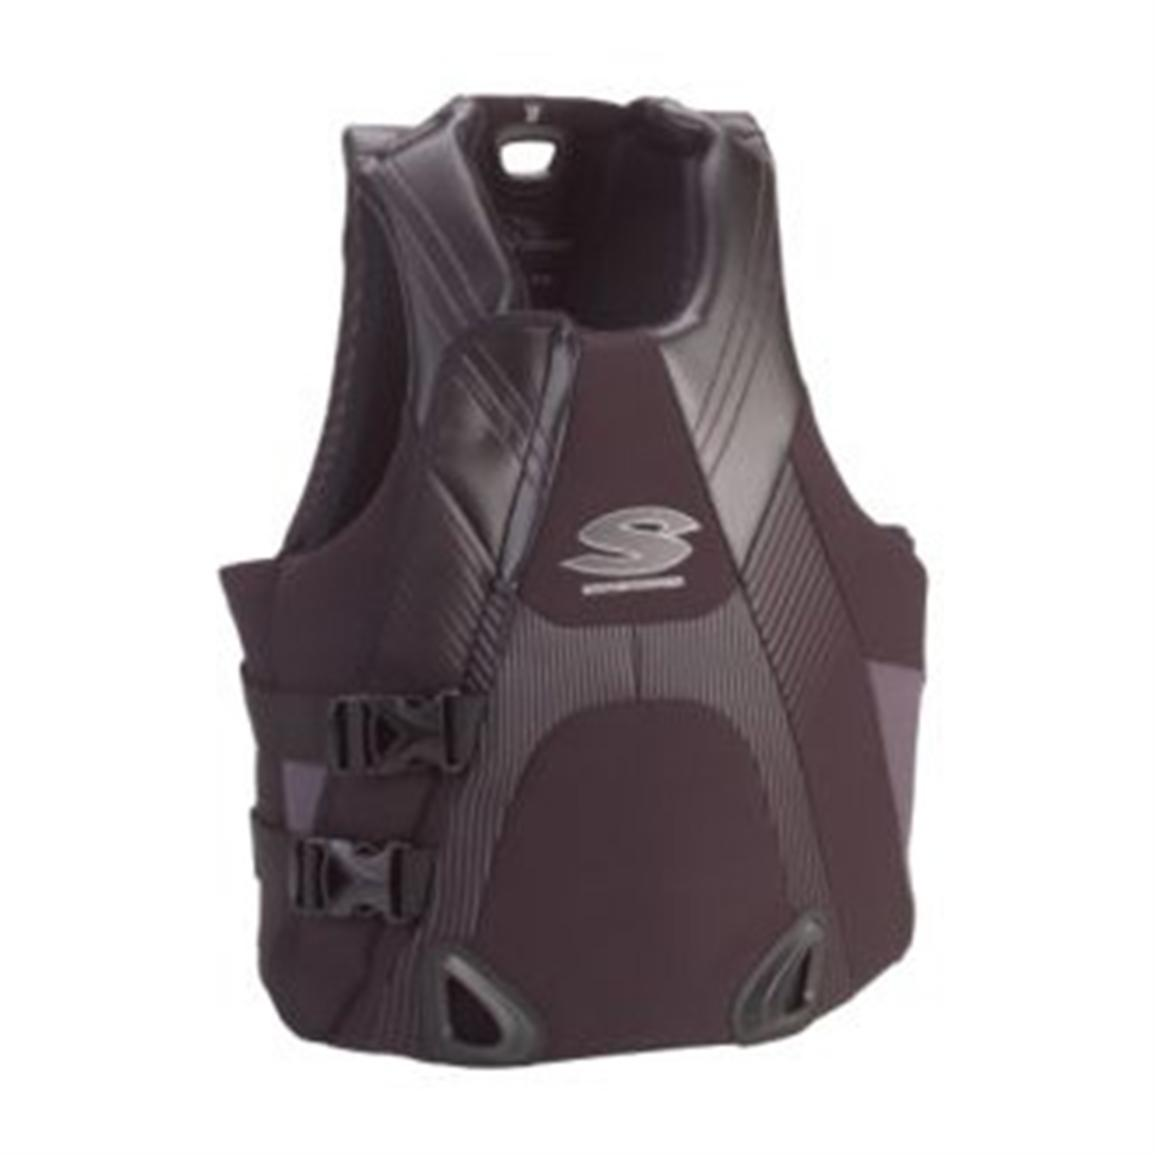 Men's Stearns® V2 Series Neoprene Life Vest